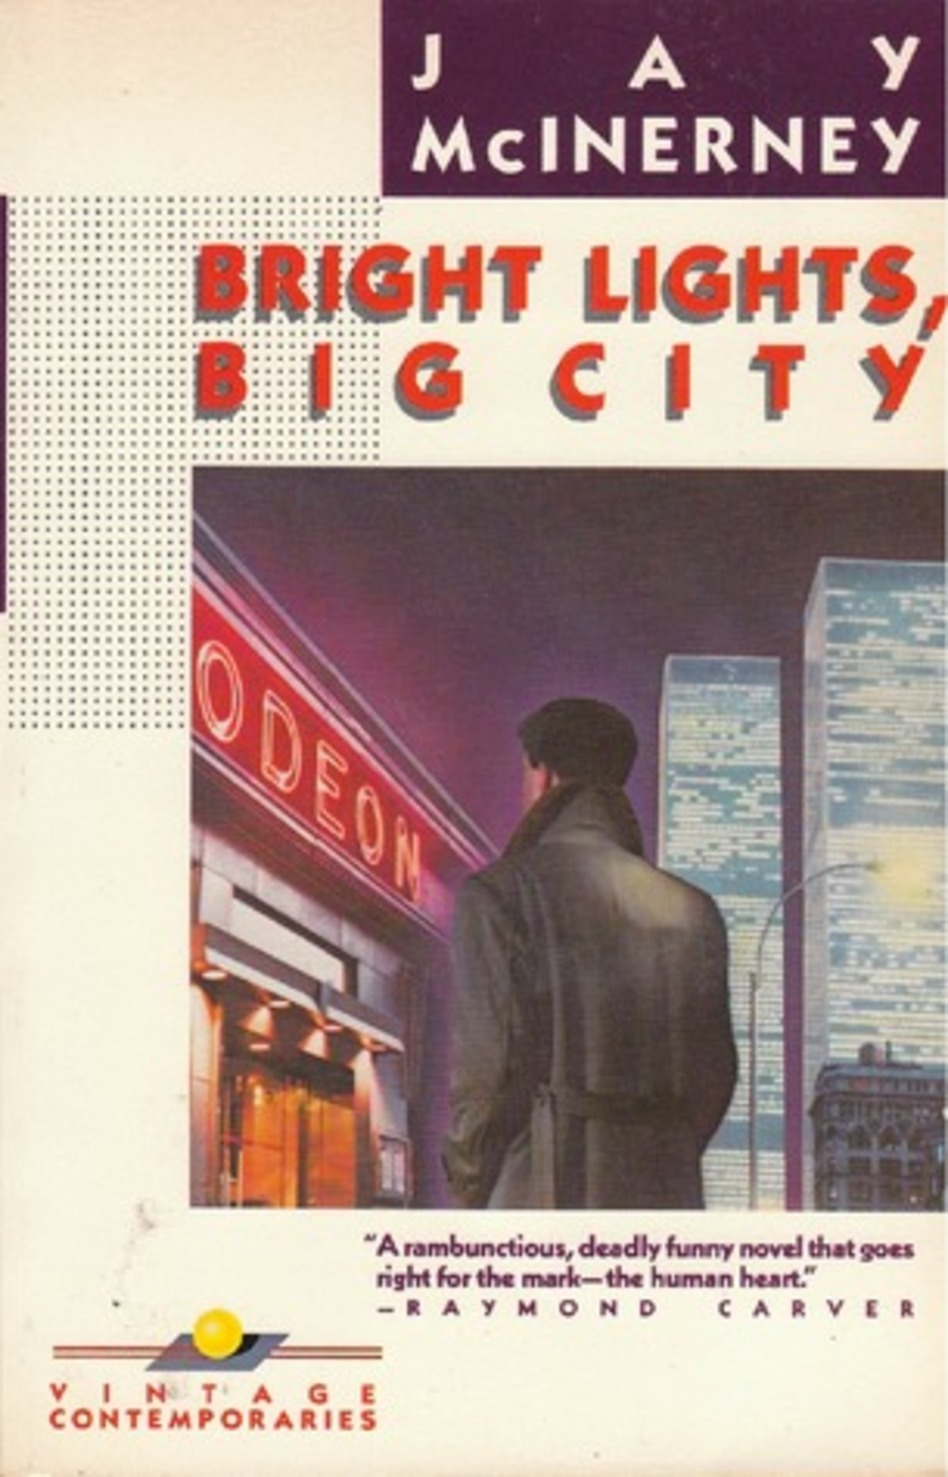 writing at the bookshelf jay mcinerney bright lights big city 1984 vintage